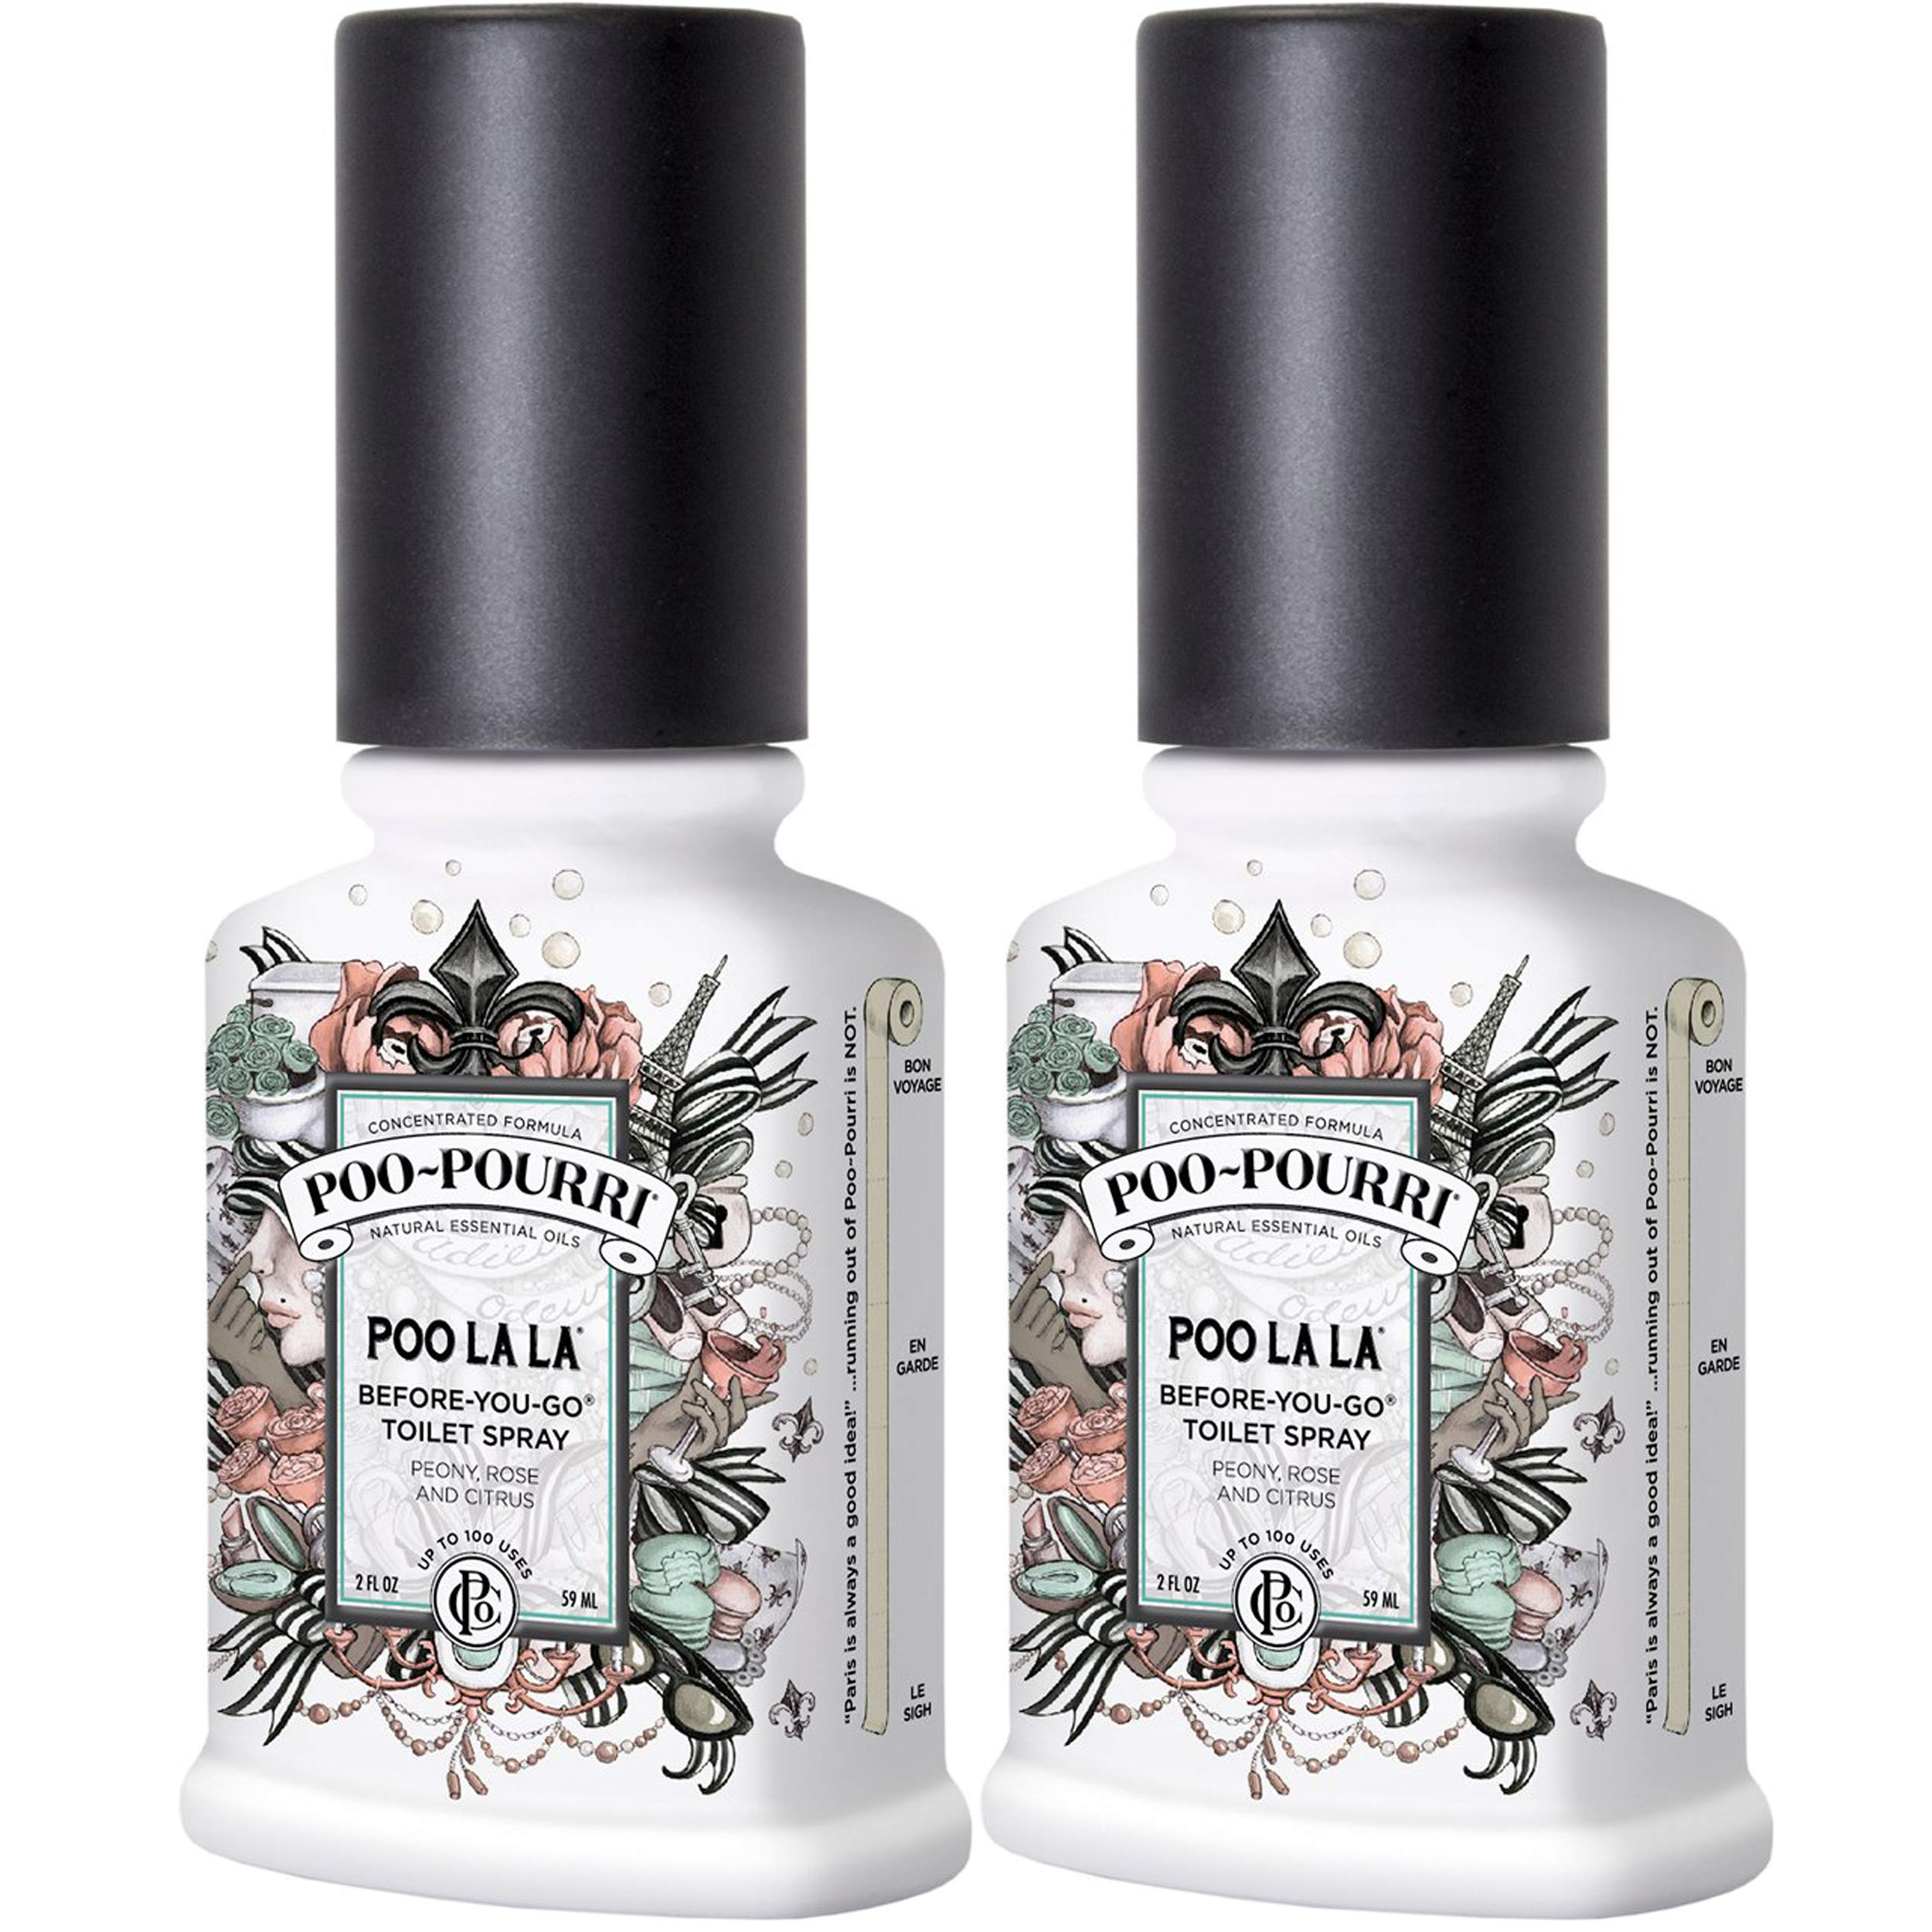 Poo-Pourri Poo La La Before-You-Go-Toilet Spray - 2-Ounce, 2 Pack by Poo-Pourri (Image #1)